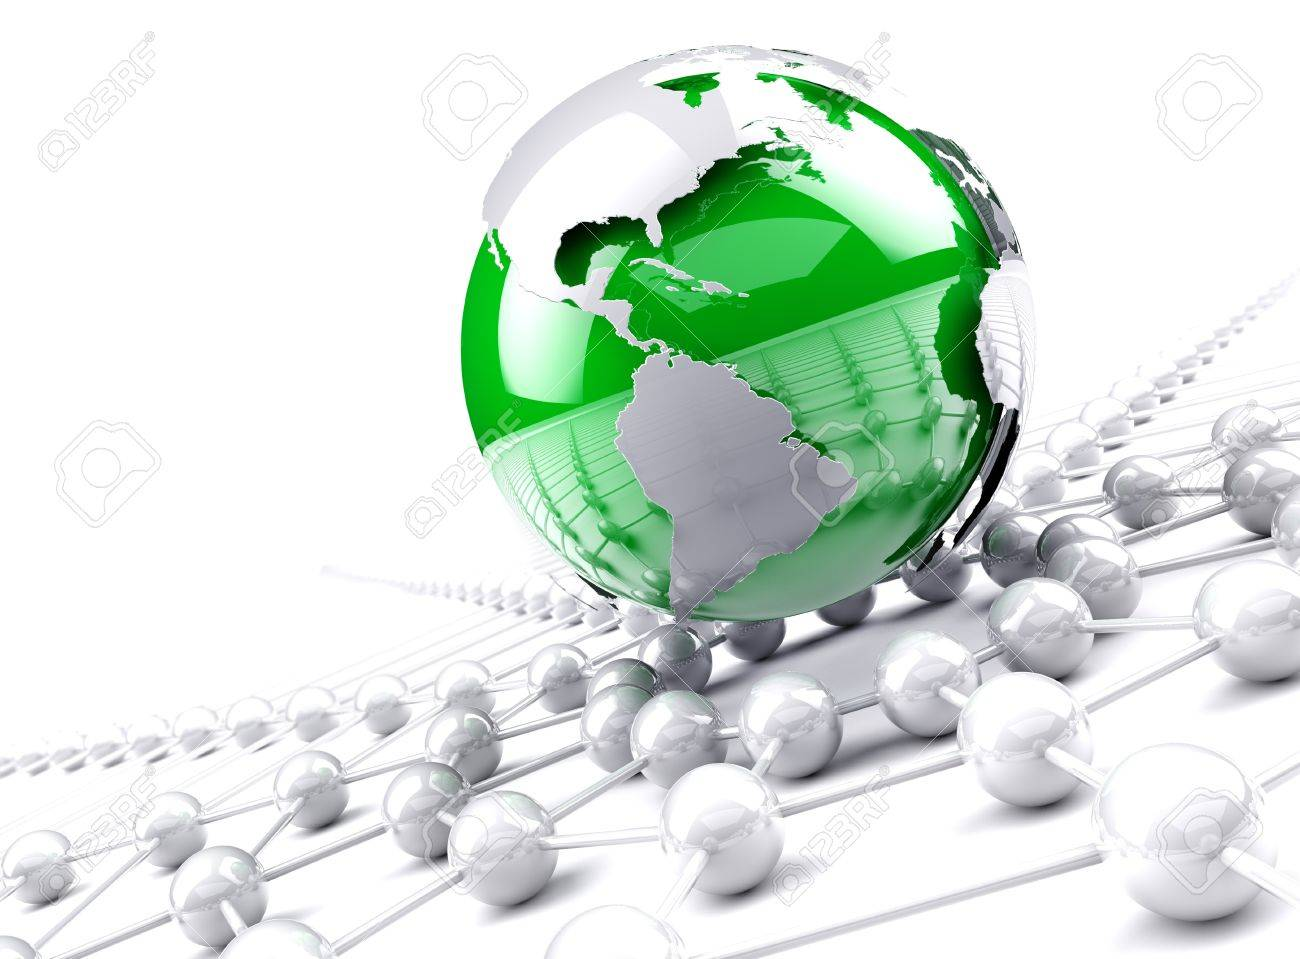 Globe world map.Internet and business networking concept - 18585986